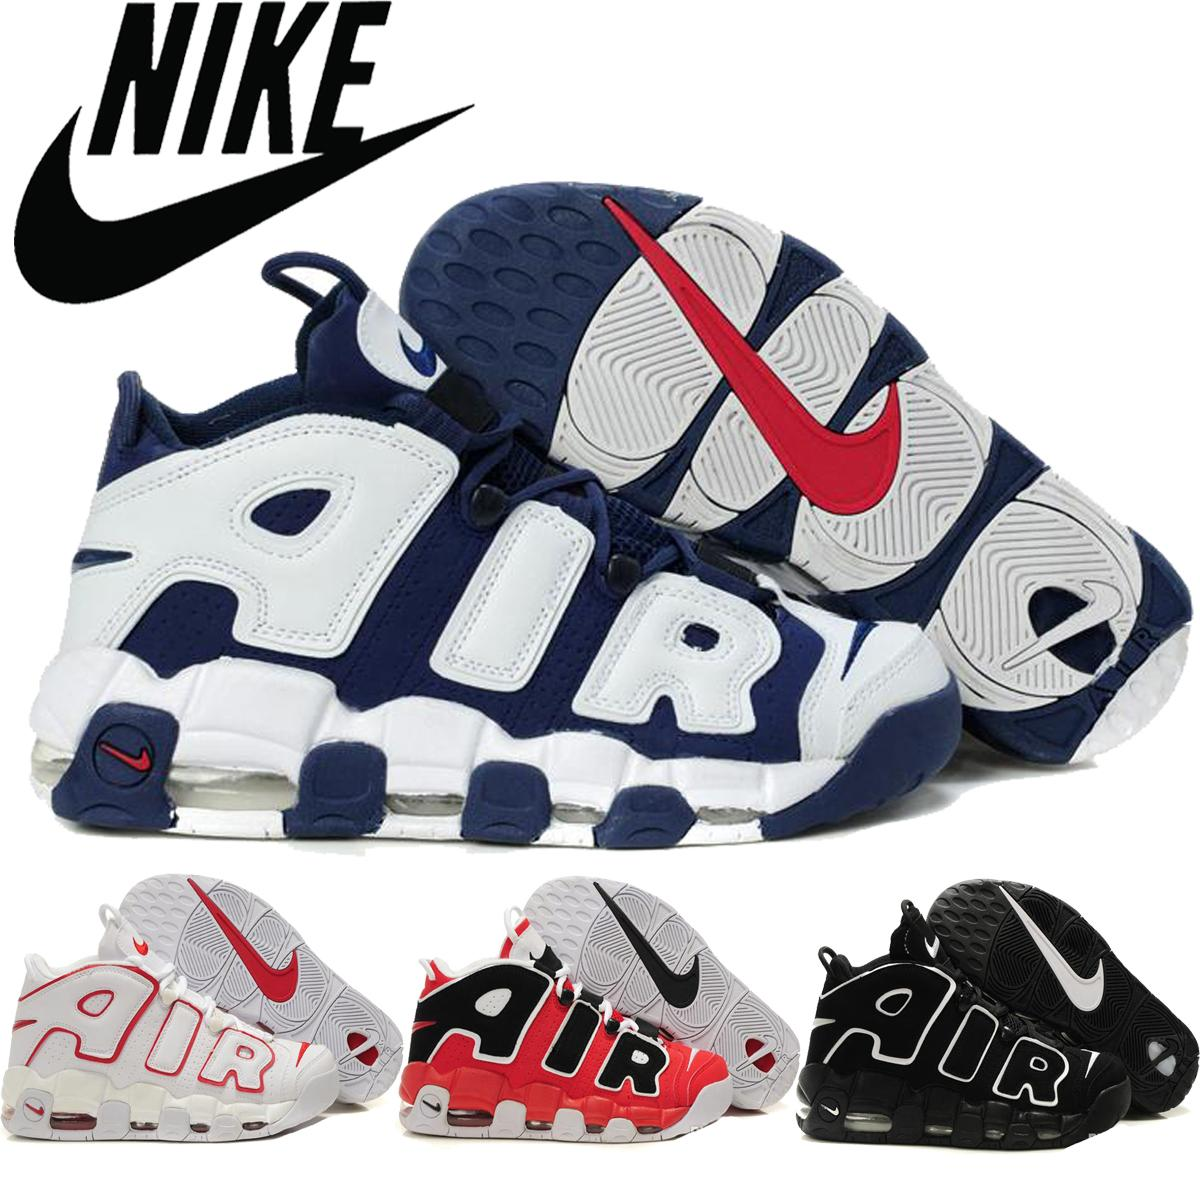 Nike Air More Uptempo Men Basketball Training Shoes Air Max Usa Olympic Men  Sneakers Discount Sports Basketball Shoes Shoes Kids Mens Basketball Shoes  From ...